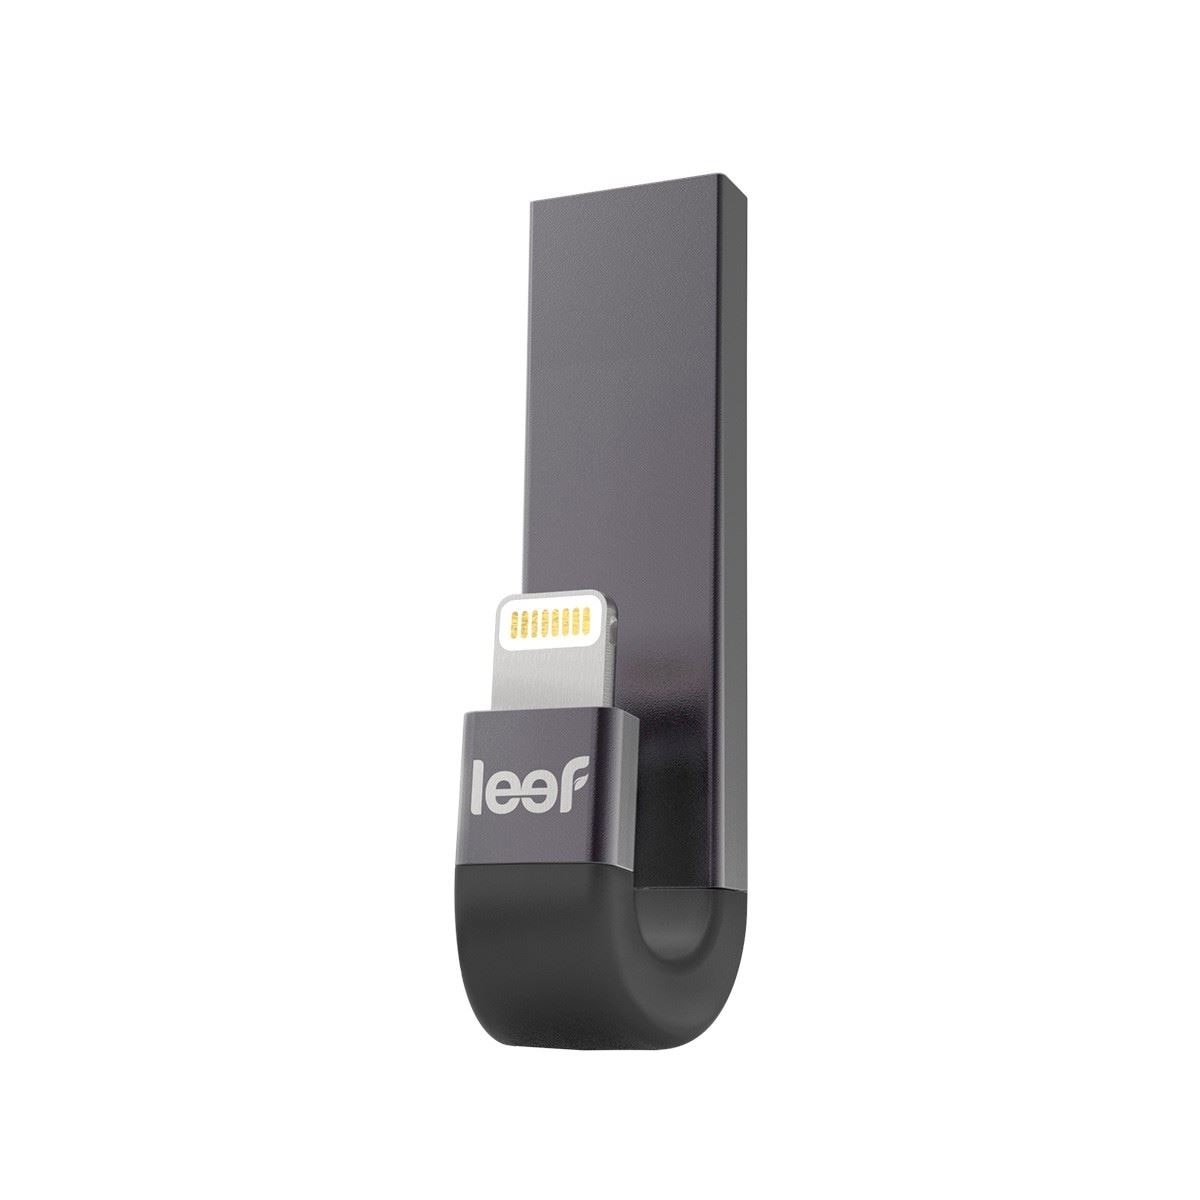 USB Leef Ibridge 3 Black 16GB